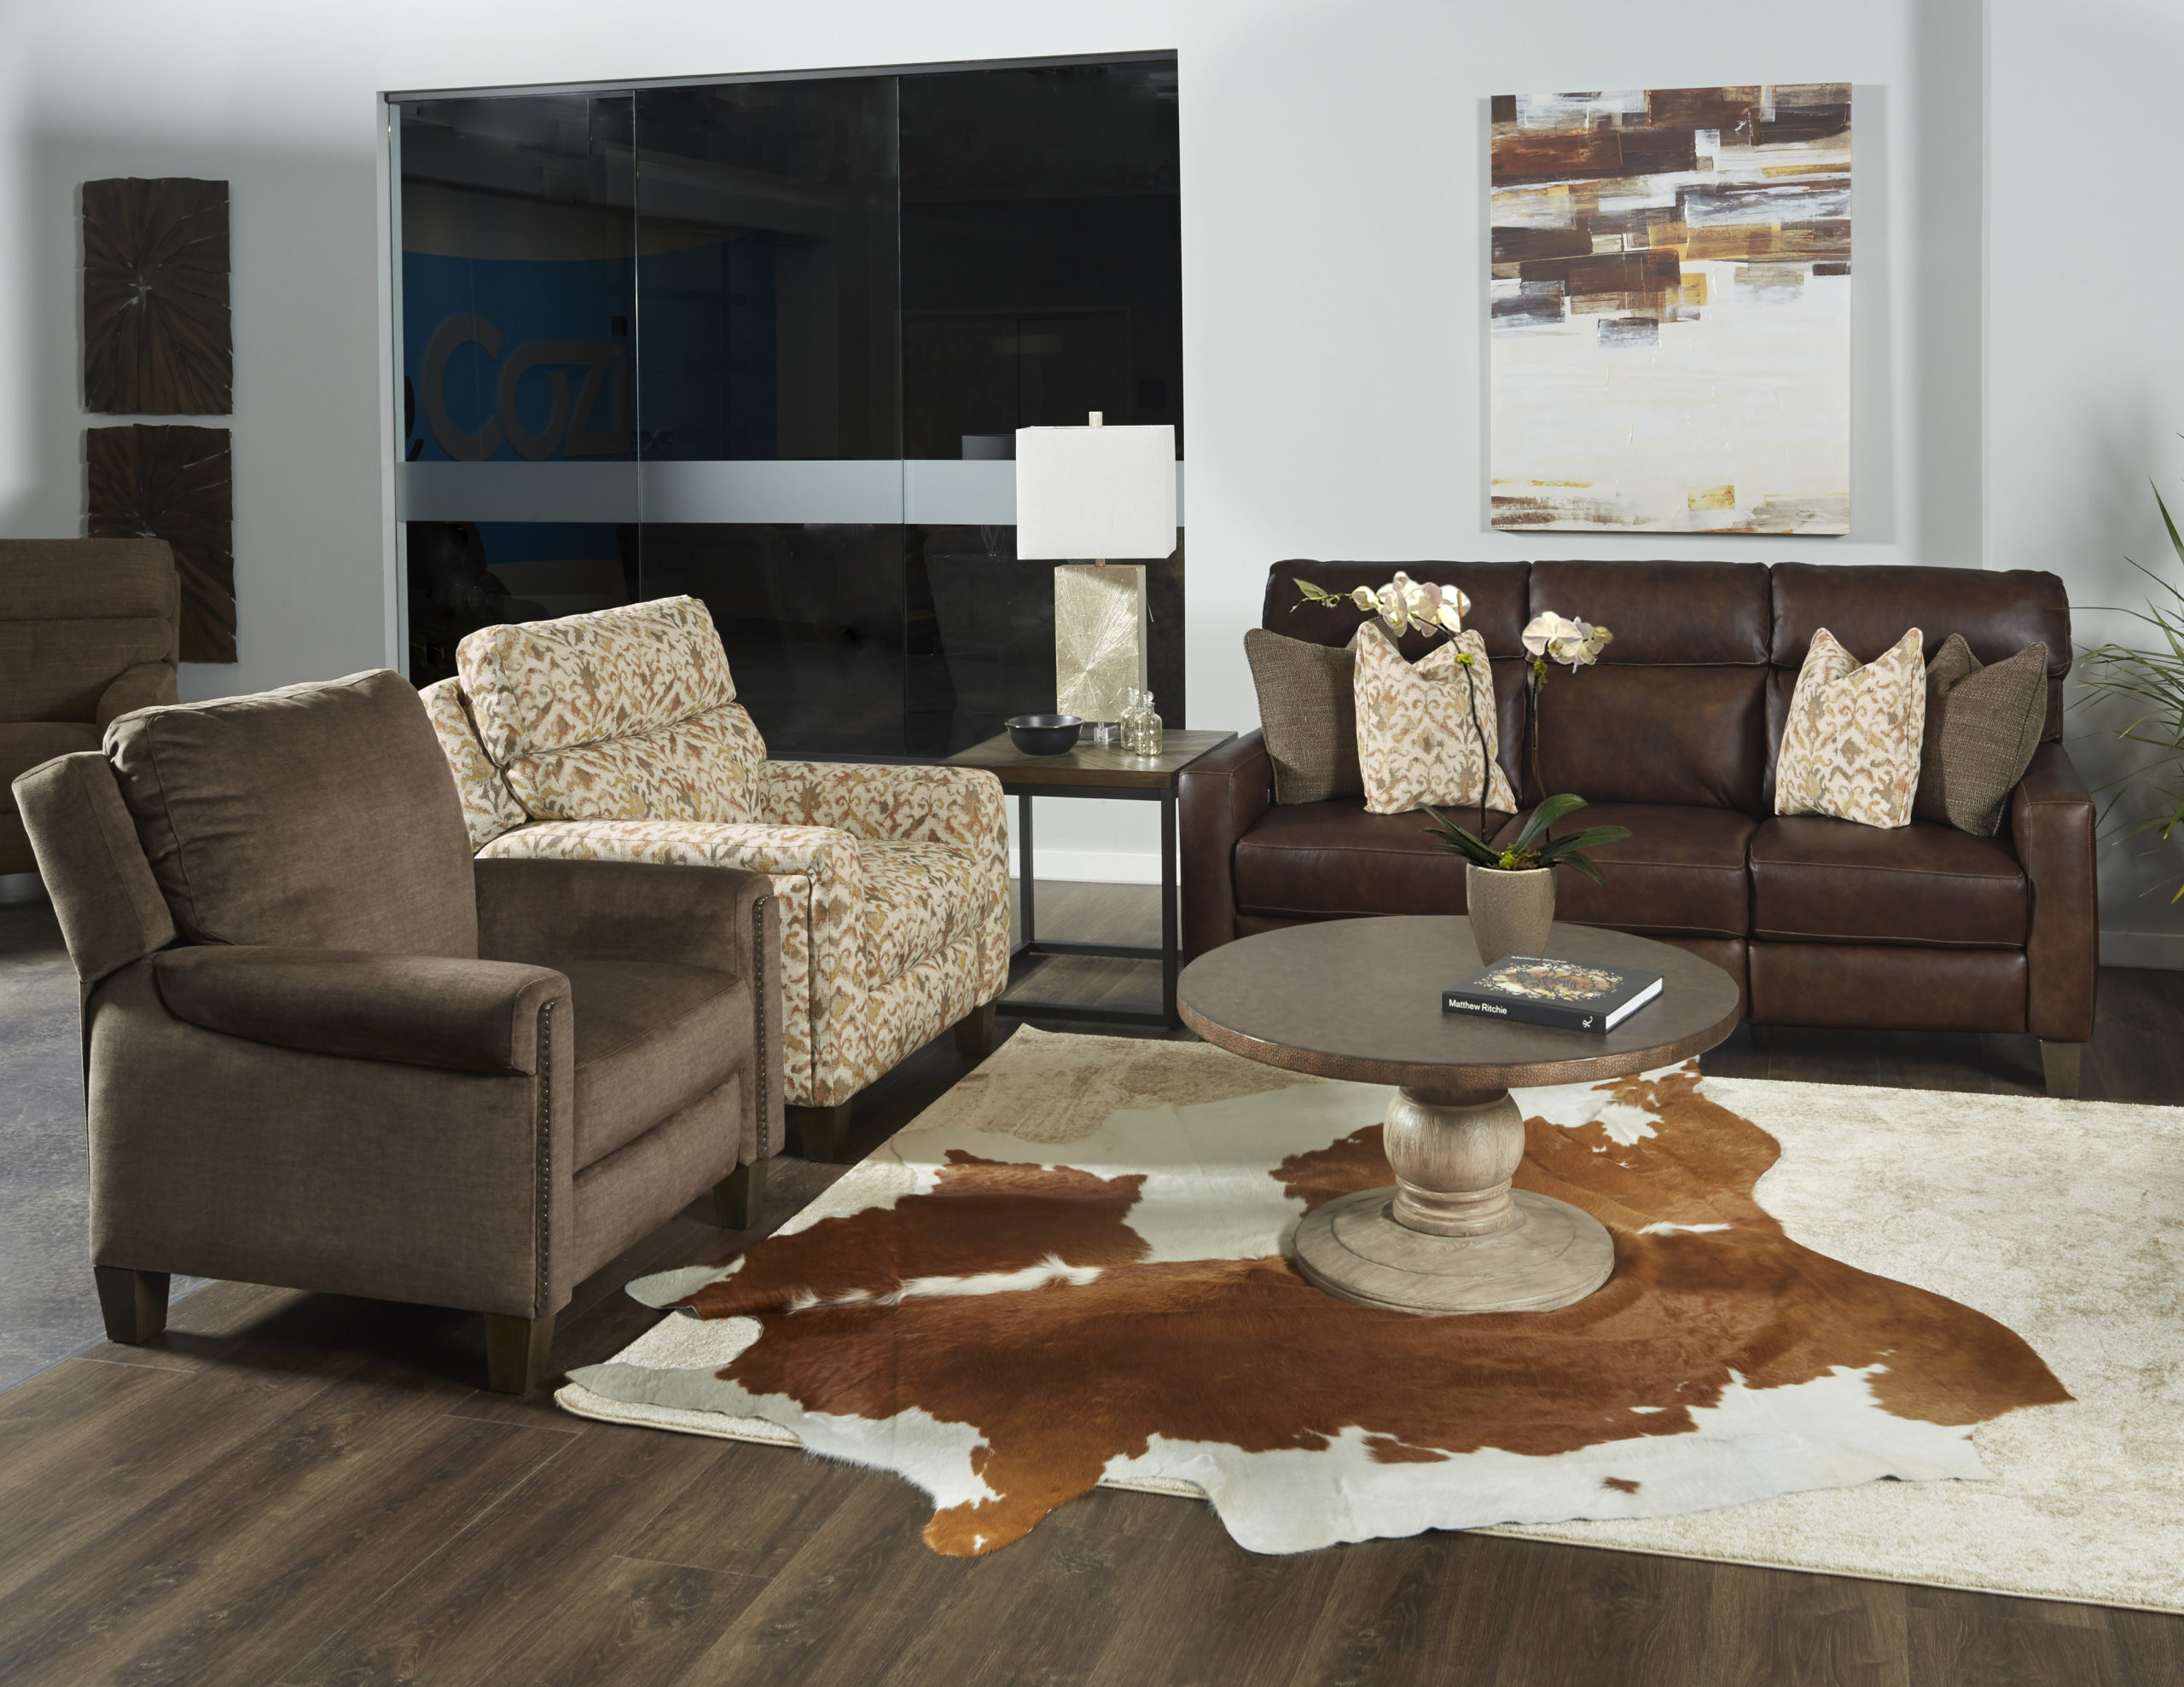 686-Mt.-Vernon-in-970-22-Eastwood-Chaps-166-23-Crosby-Leather-423-31-Bolero-Flame-157-15-Legacy-Latte-left-recliner-Showroom-Vignette-scaled